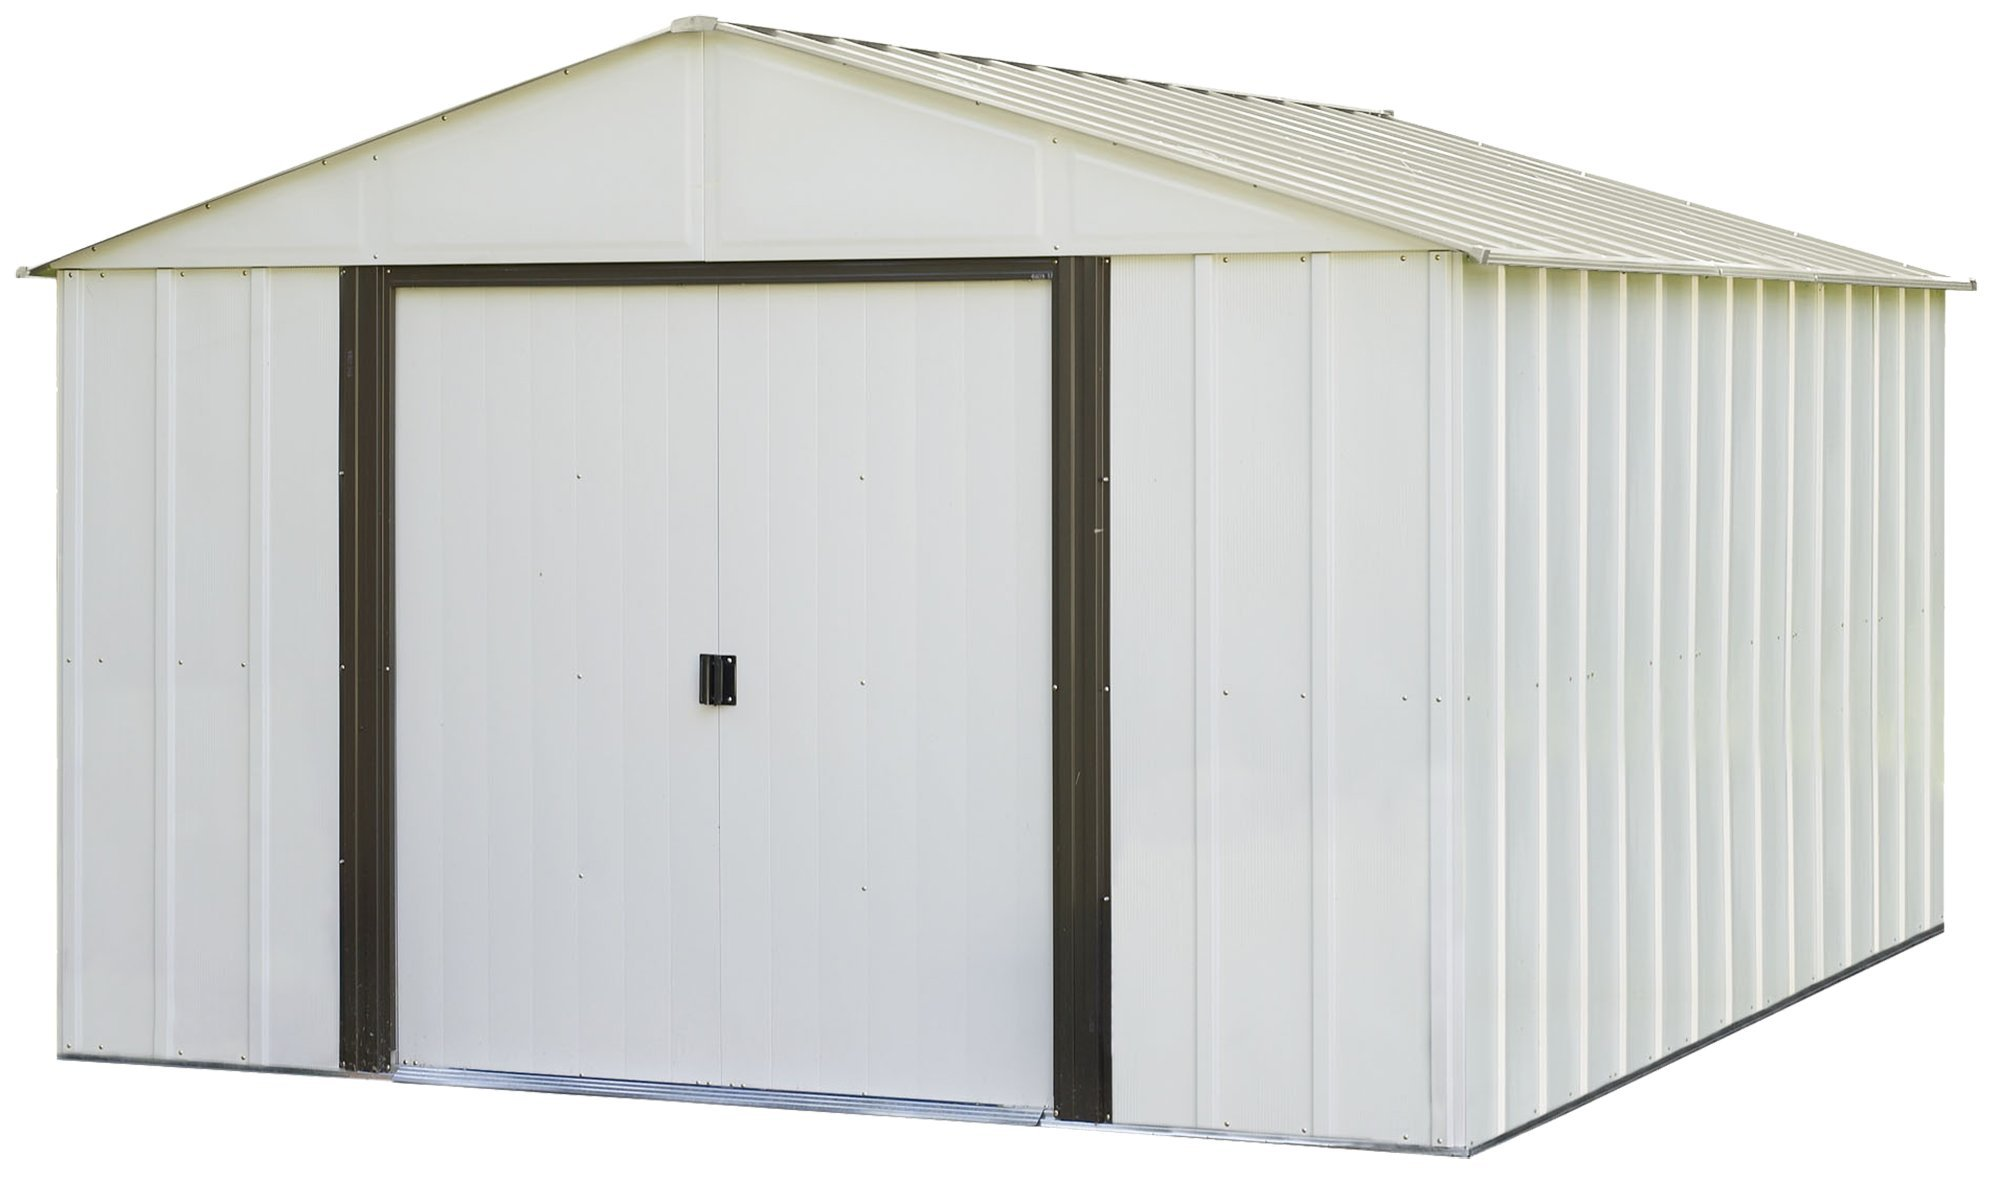 Arrow Shed AR1012  Arlington 10-Feet by 12-Feet Steel Storage Shed